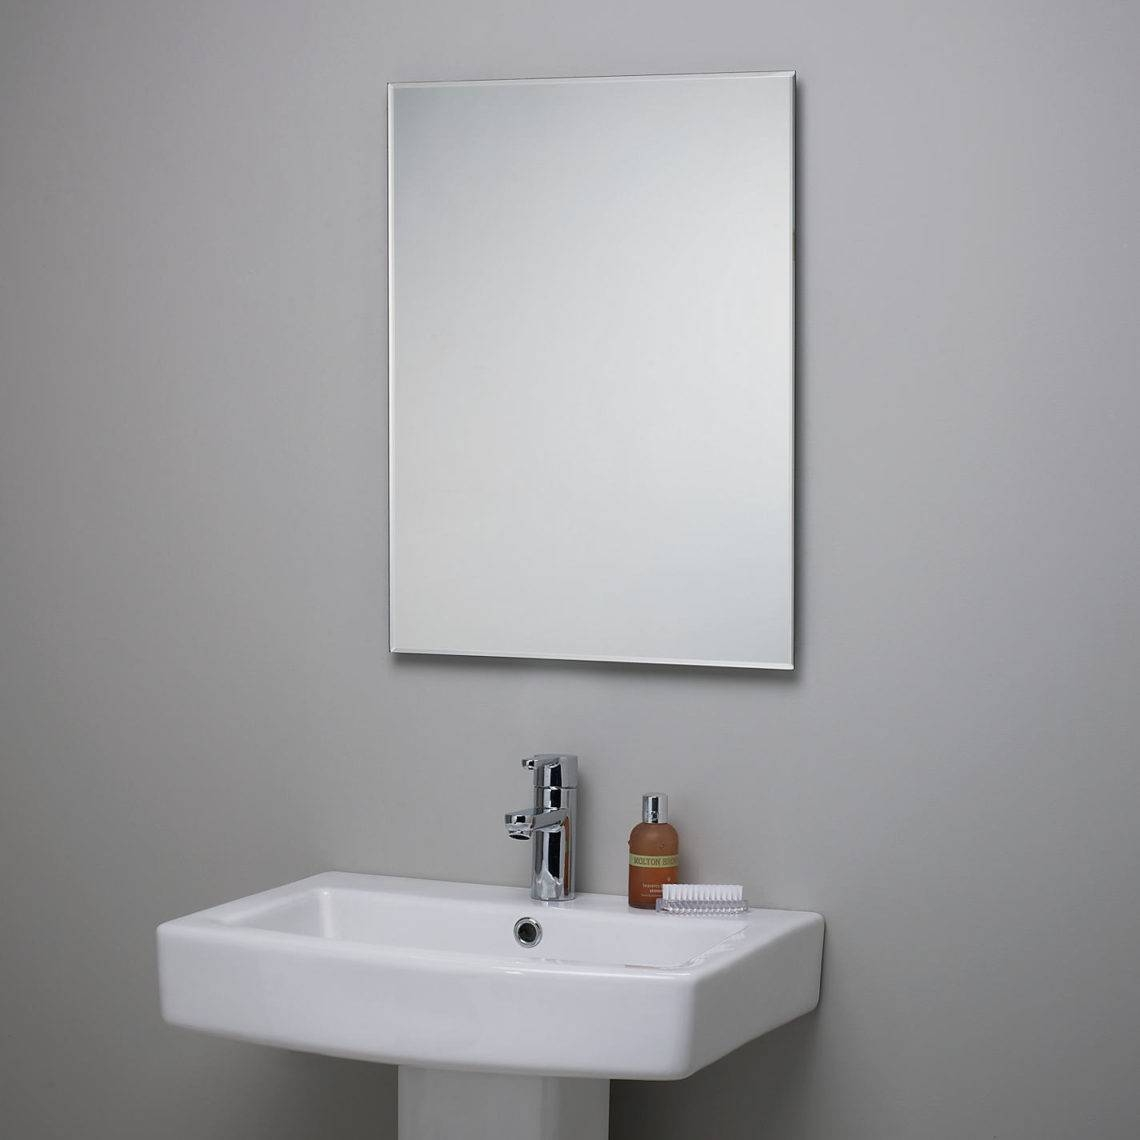 Frameless Bathroom Mirror Large – Harpsounds.co in Frameless Large Mirrors (Image 7 of 25)